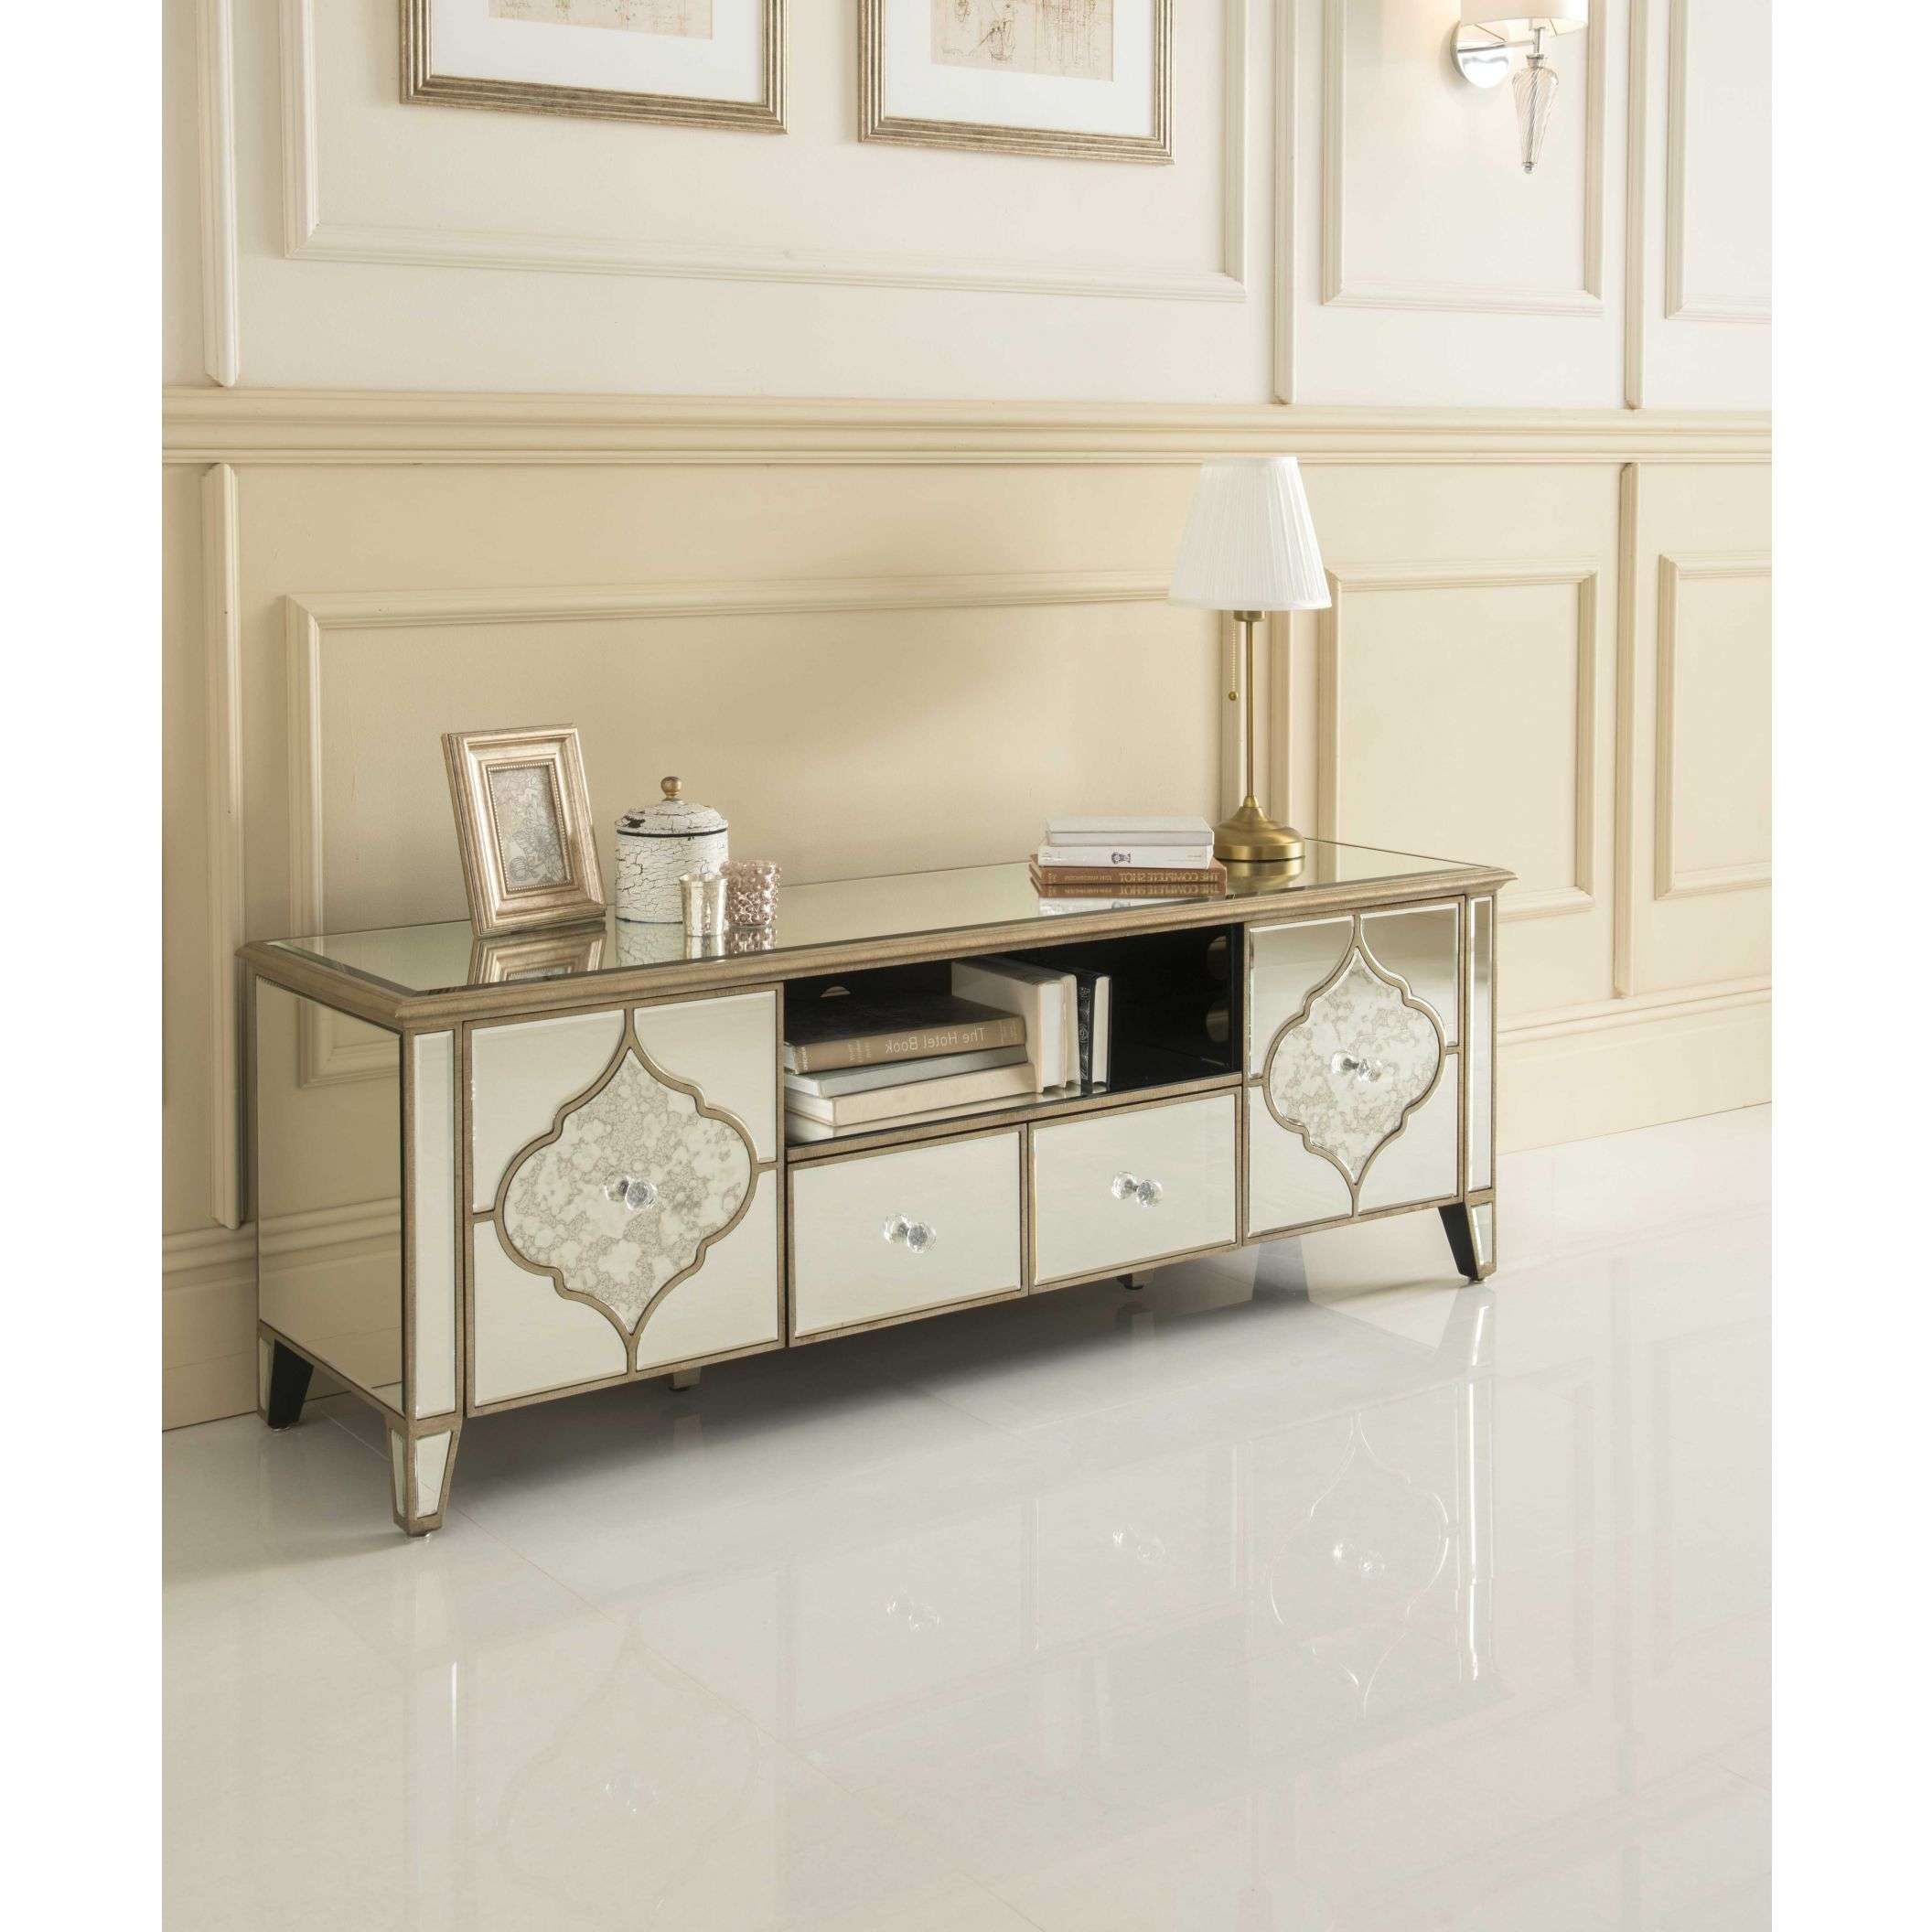 Sassari Mirrored Tv Cabinet | Glass Furniture Pertaining To Mirrored Tv Cabinets Furniture (View 16 of 20)